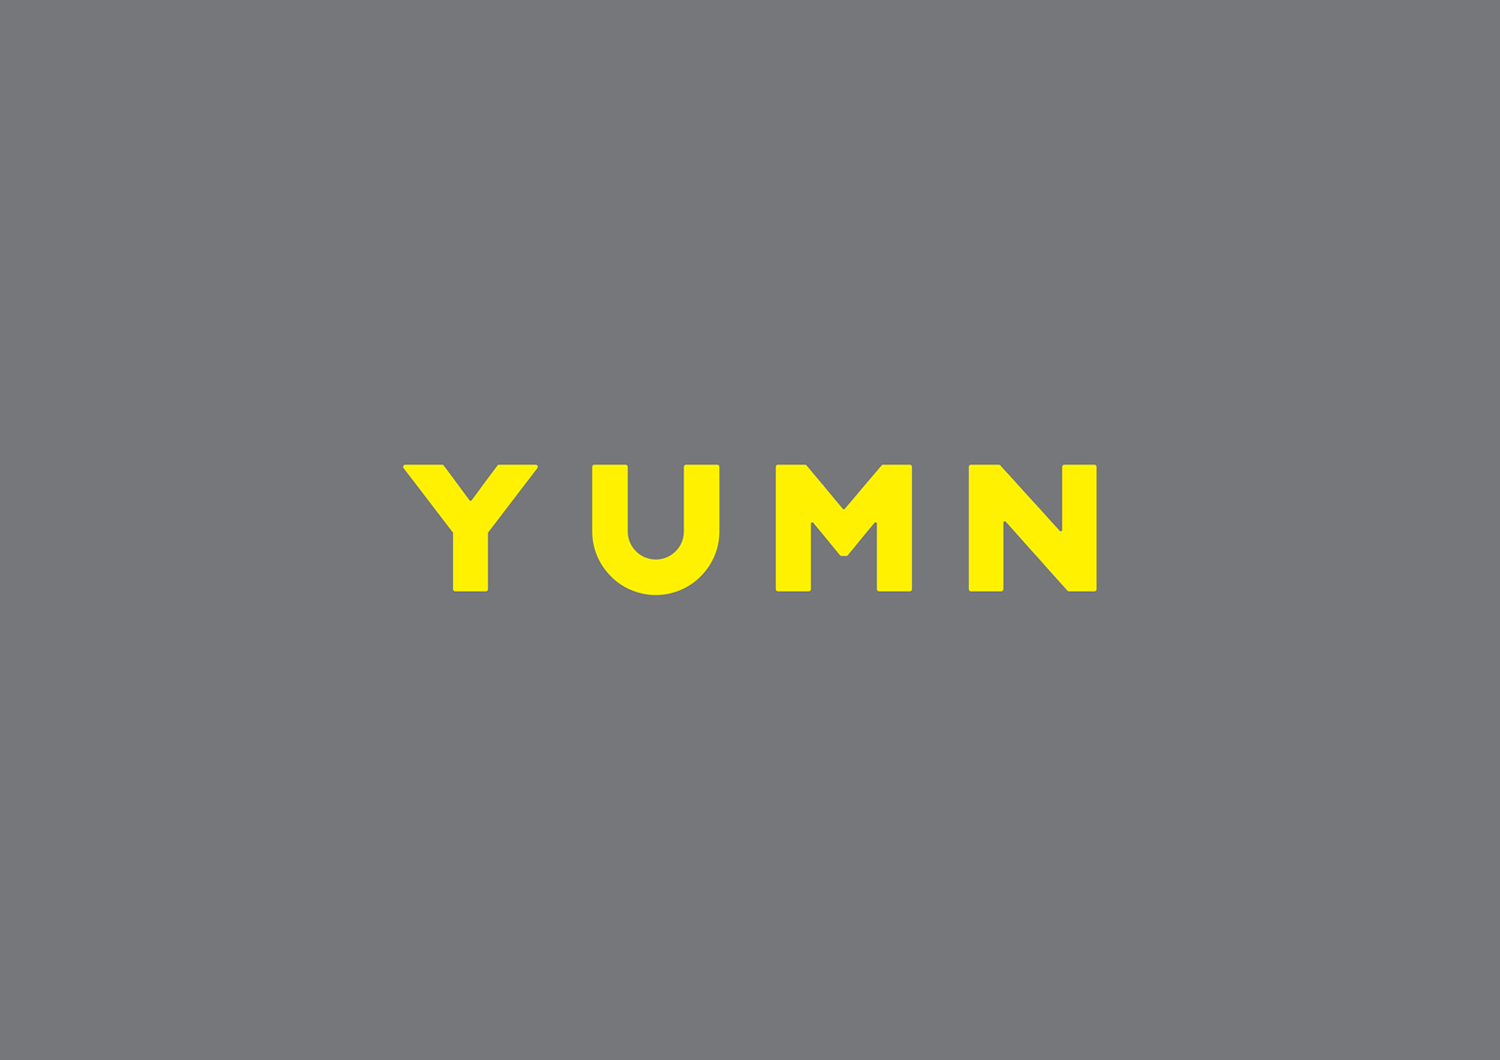 Logo design by Brighton-based Filthymedia for Boxpark Croydon's casual luxury restaurant Yumn